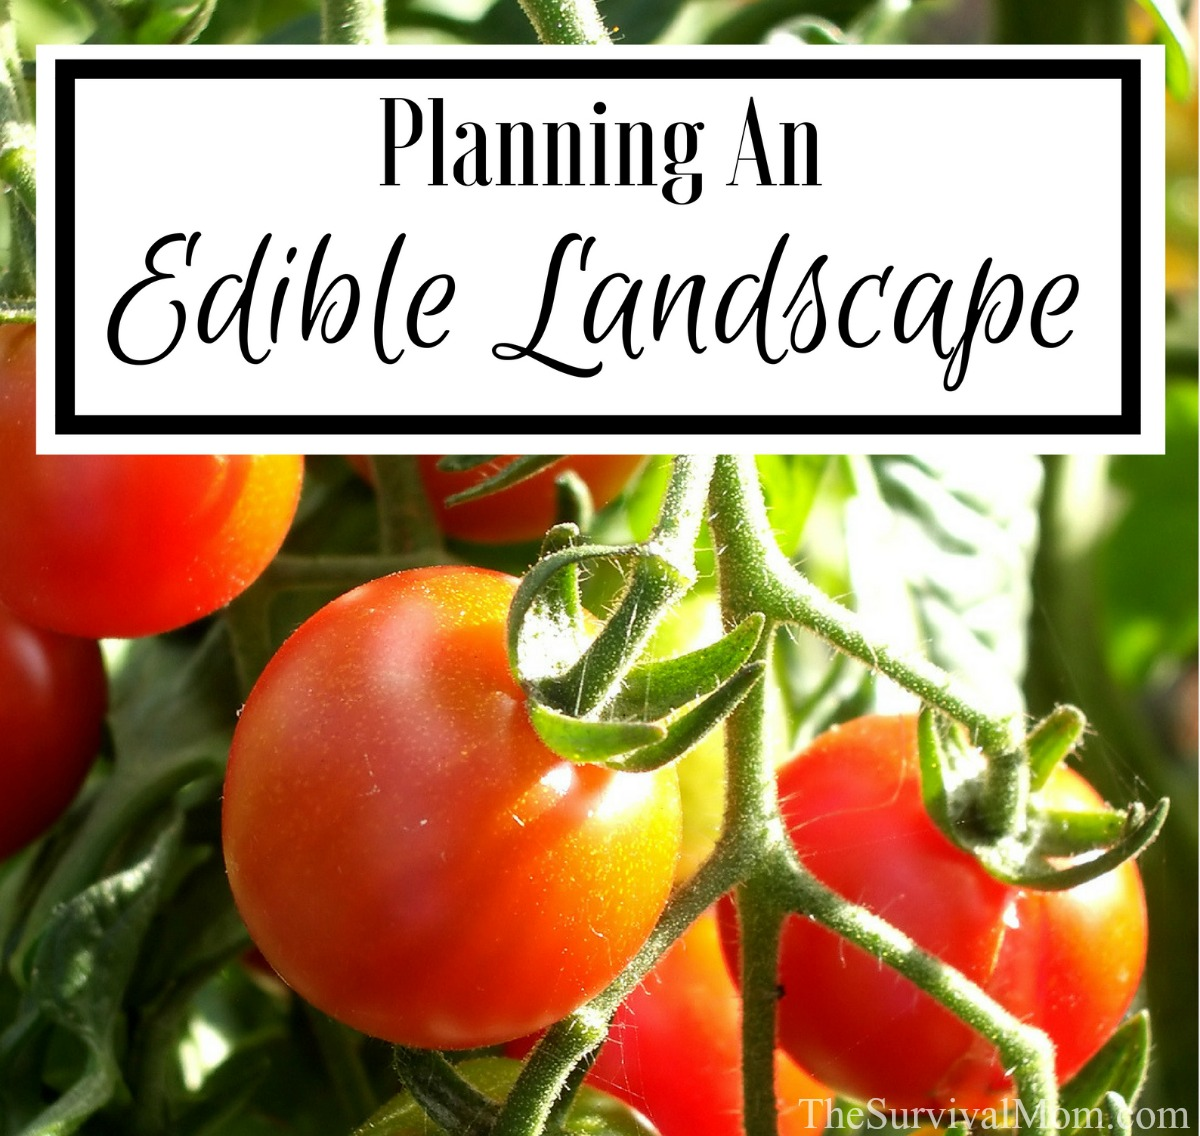 Planning An Edible Landscape via The Survival Mom